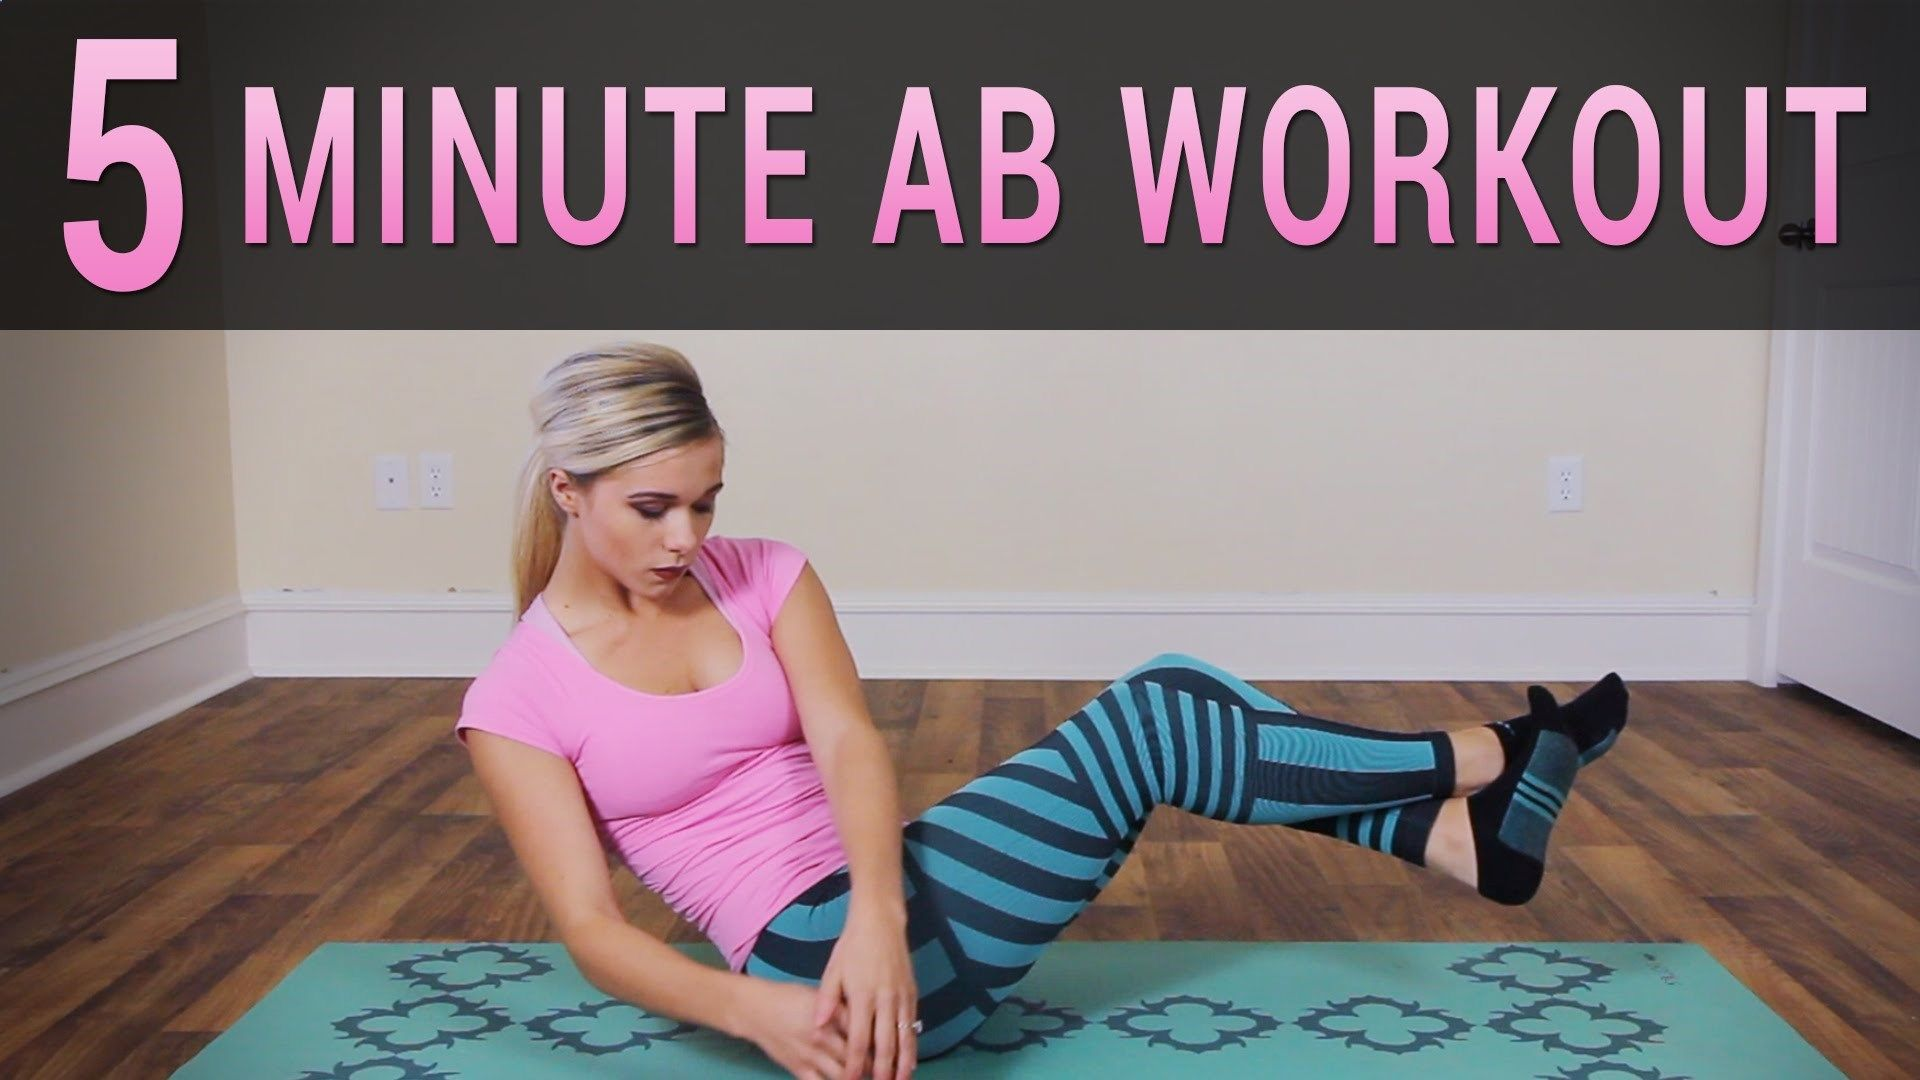 5 minute ab workout to lose belly fat